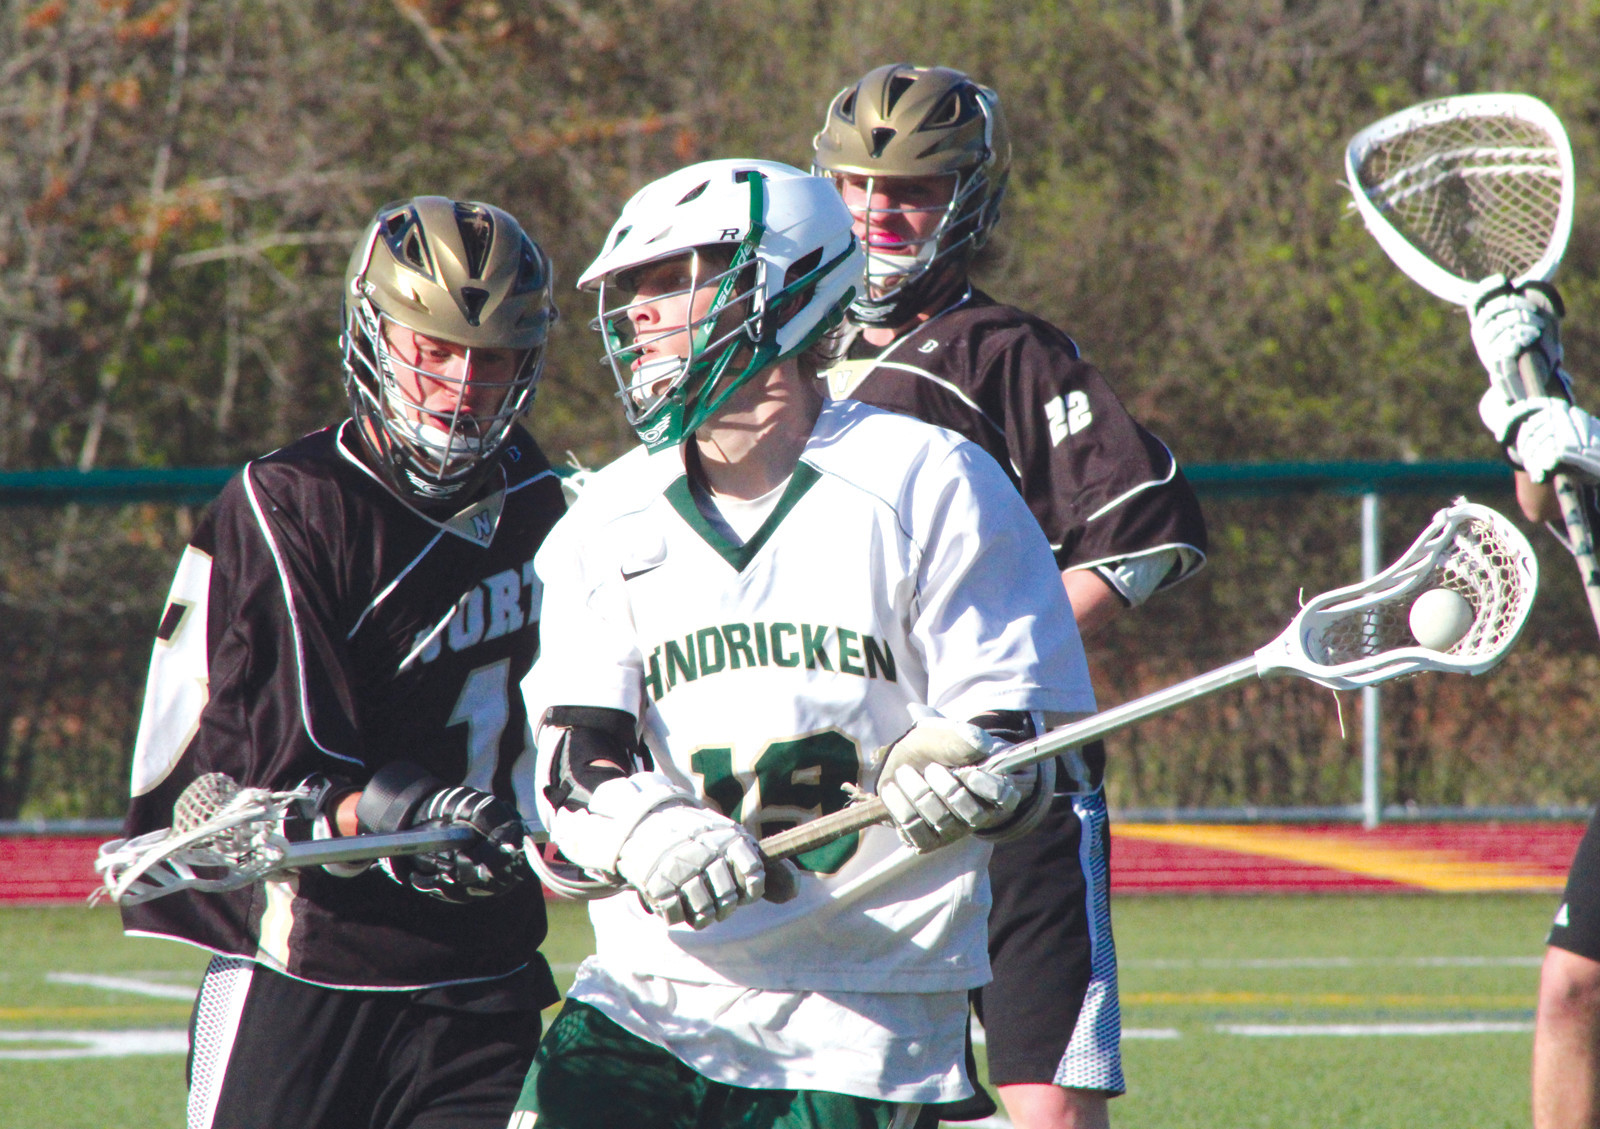 TOUGH TO CONTAIN: Dylan McSparren scored six goals as Hendricken defeated North Kingstown on Tuesday, 12-9.